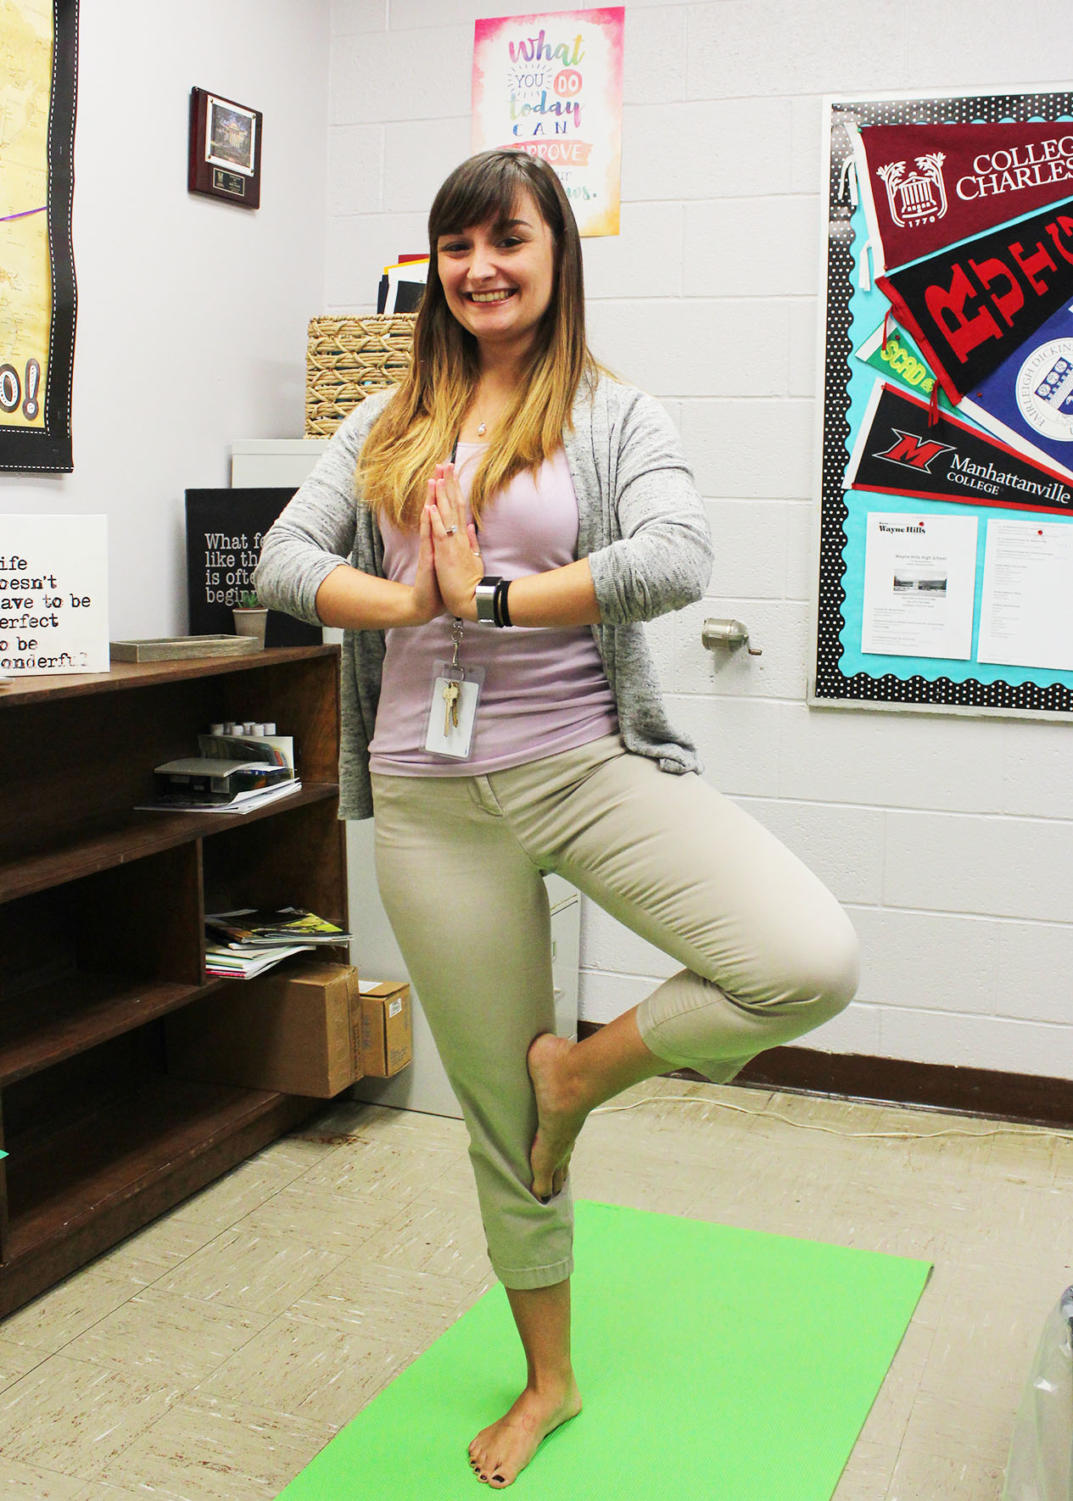 Ms. Venezia starts her day off with a yoga session